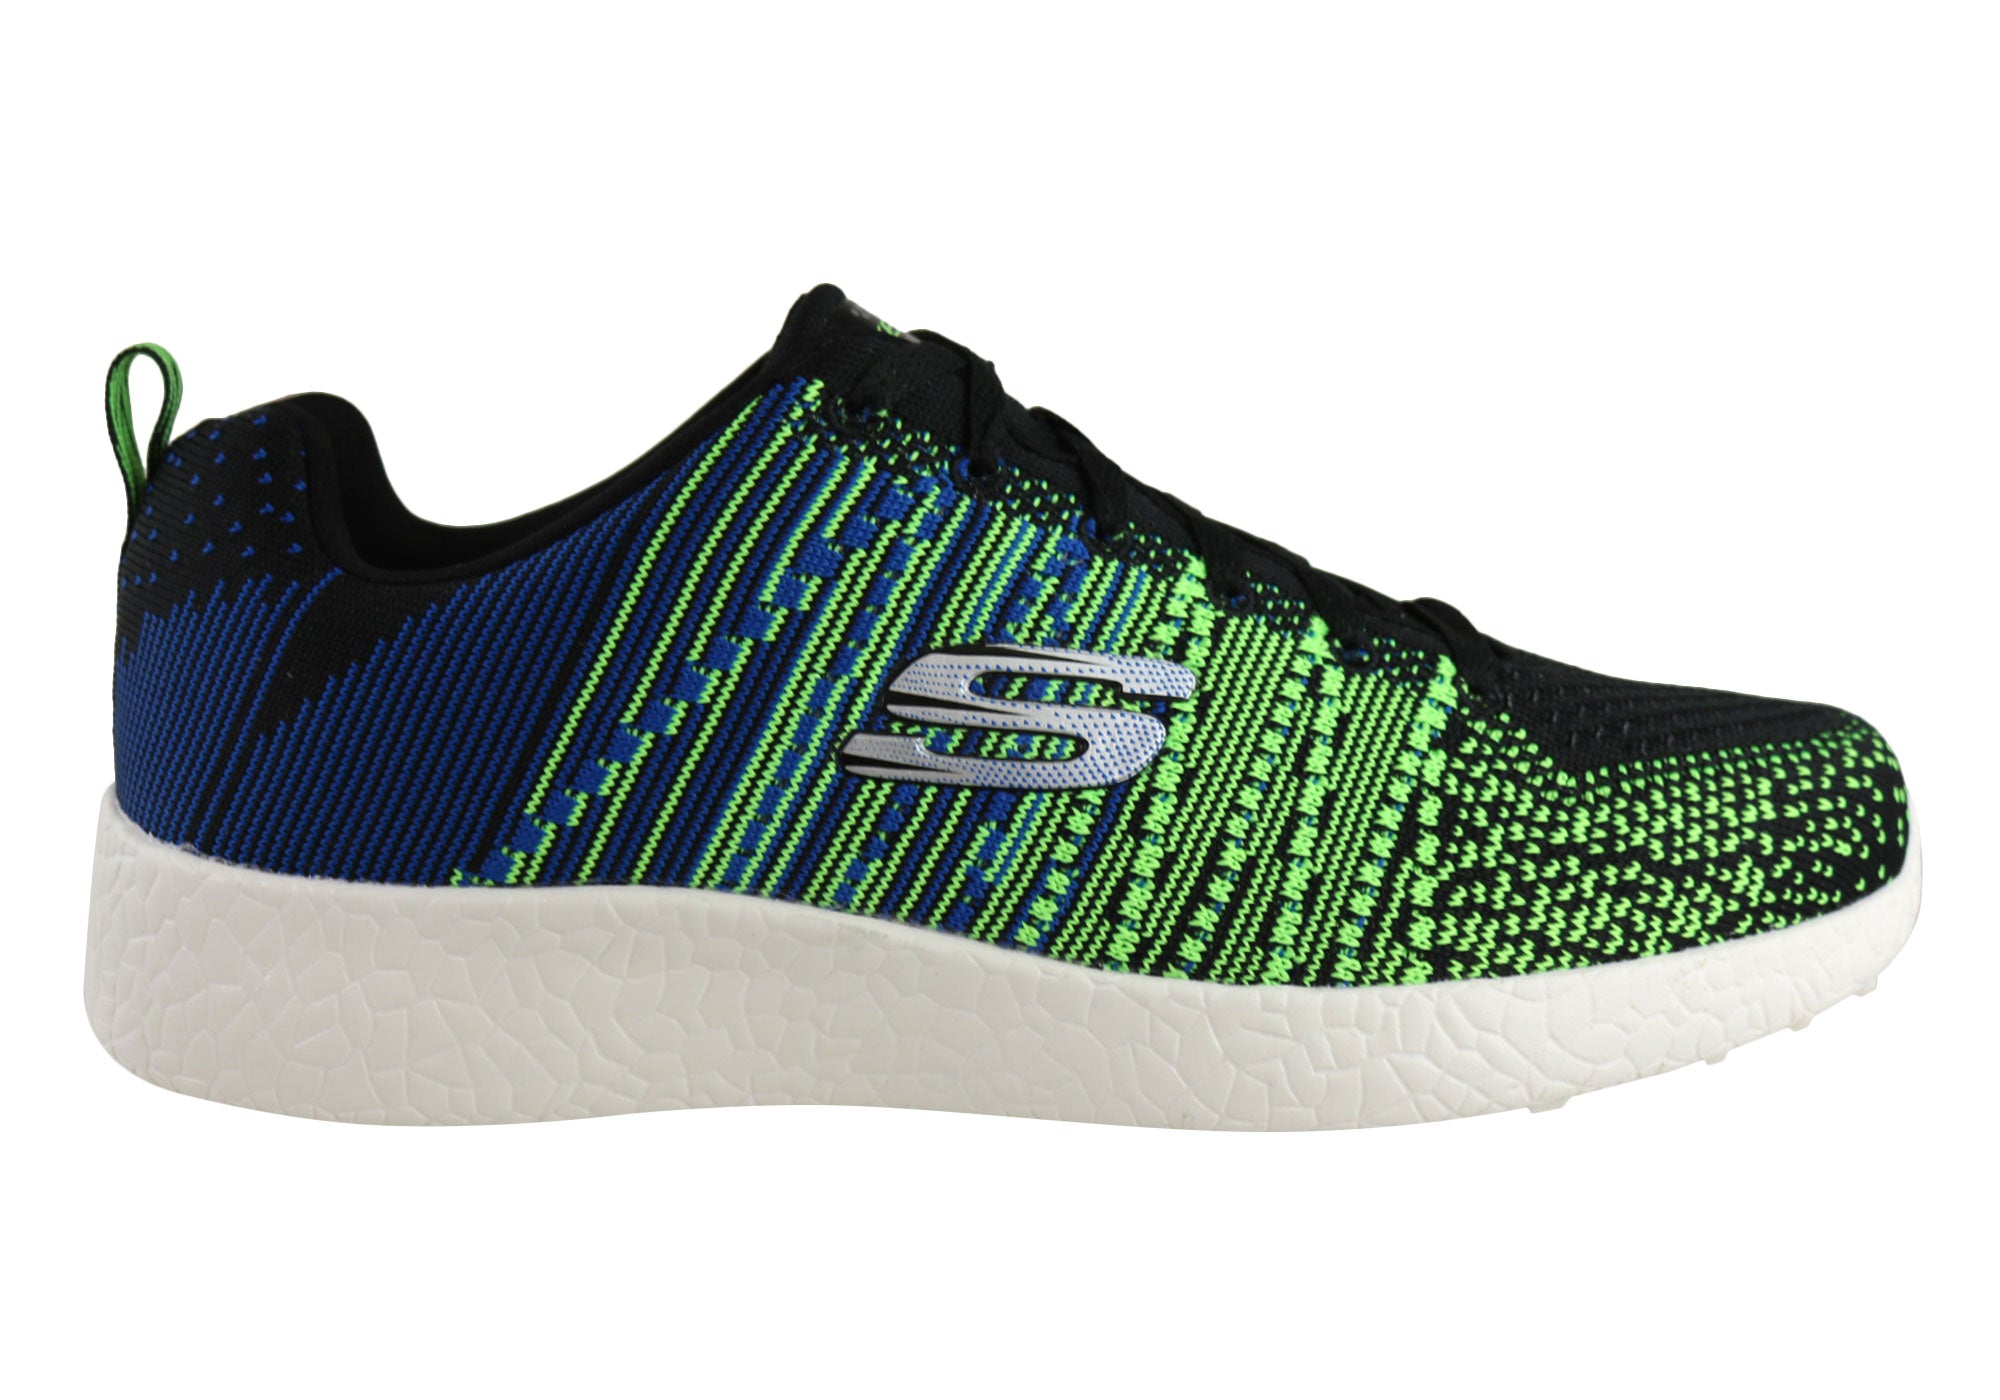 Skechers Boys Burst In The Mix Air Cooled Memory Foam Comfort Lace Trainers SALE